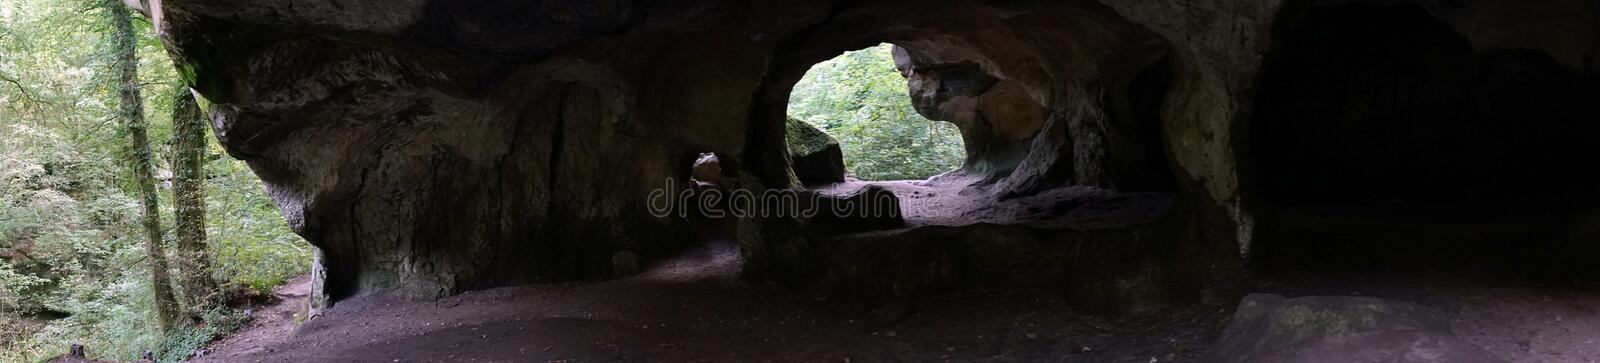 Hohhlay cave and forest. Hohllay cave in the forest in Luxembourg royalty free stock photography